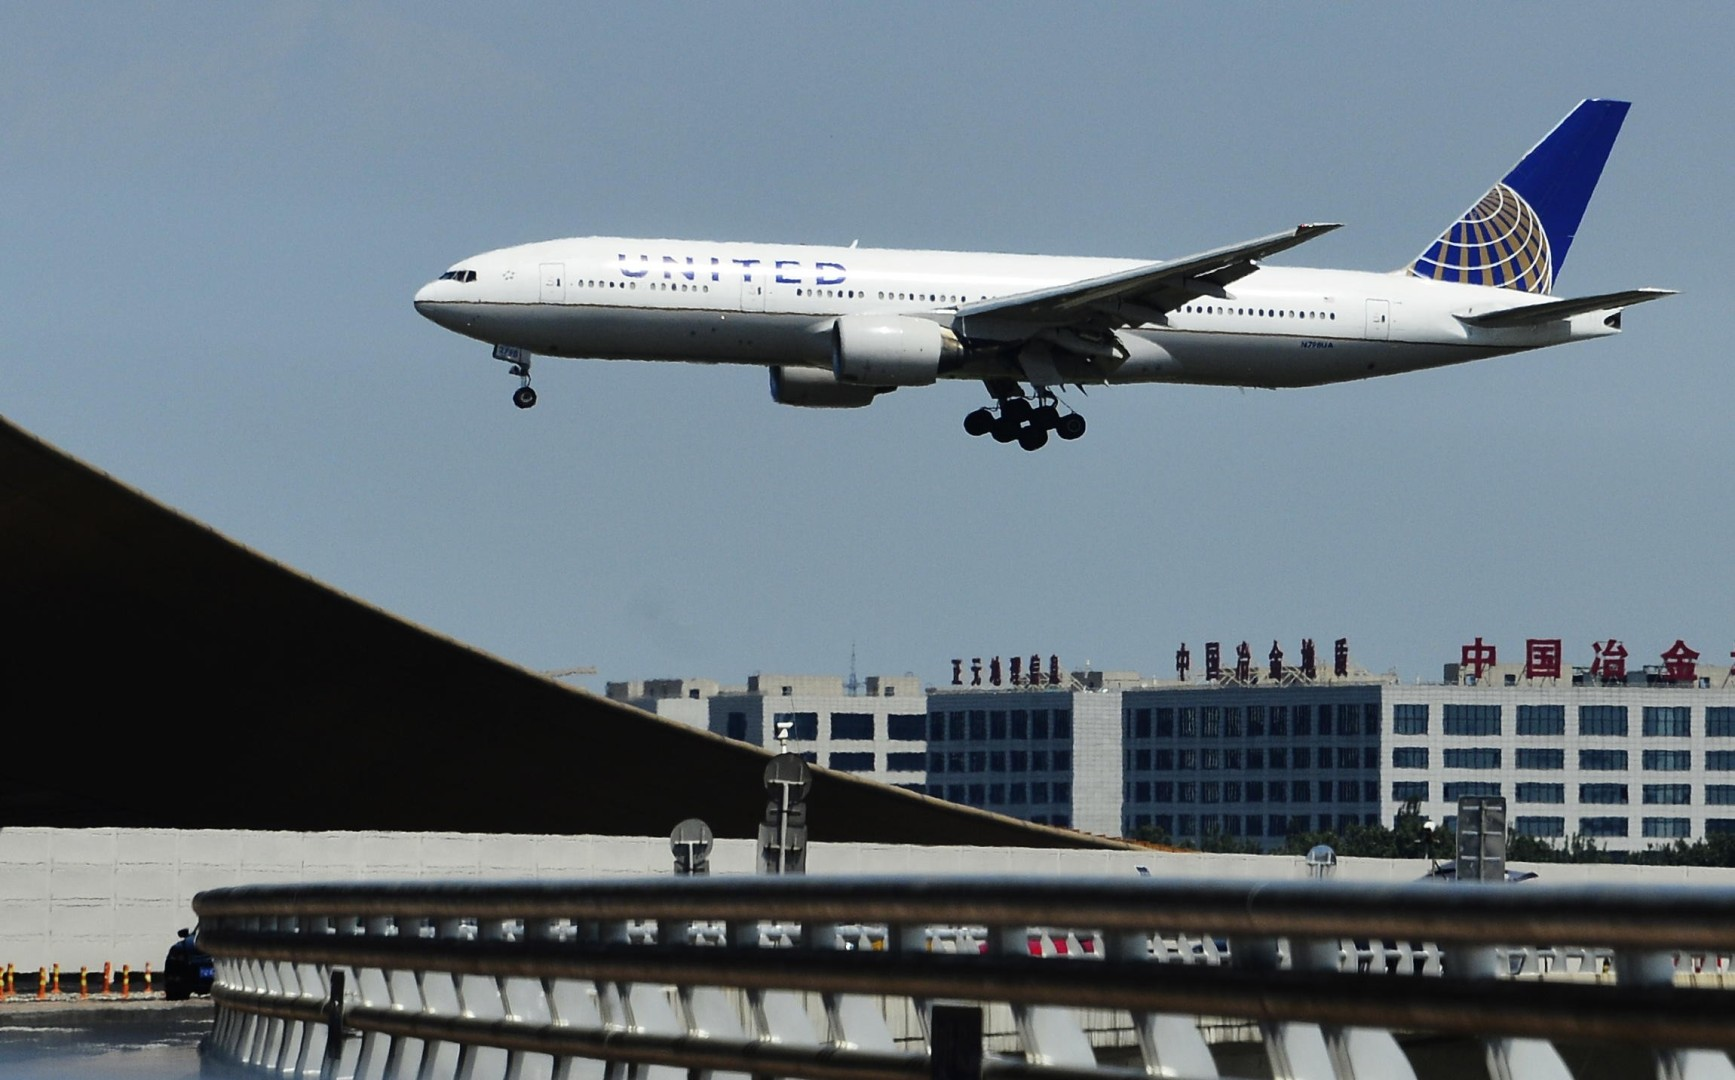 Whats Hurry About Flying South When >> United Airlines Flight To Washington Forced To Turn Back To Beijing